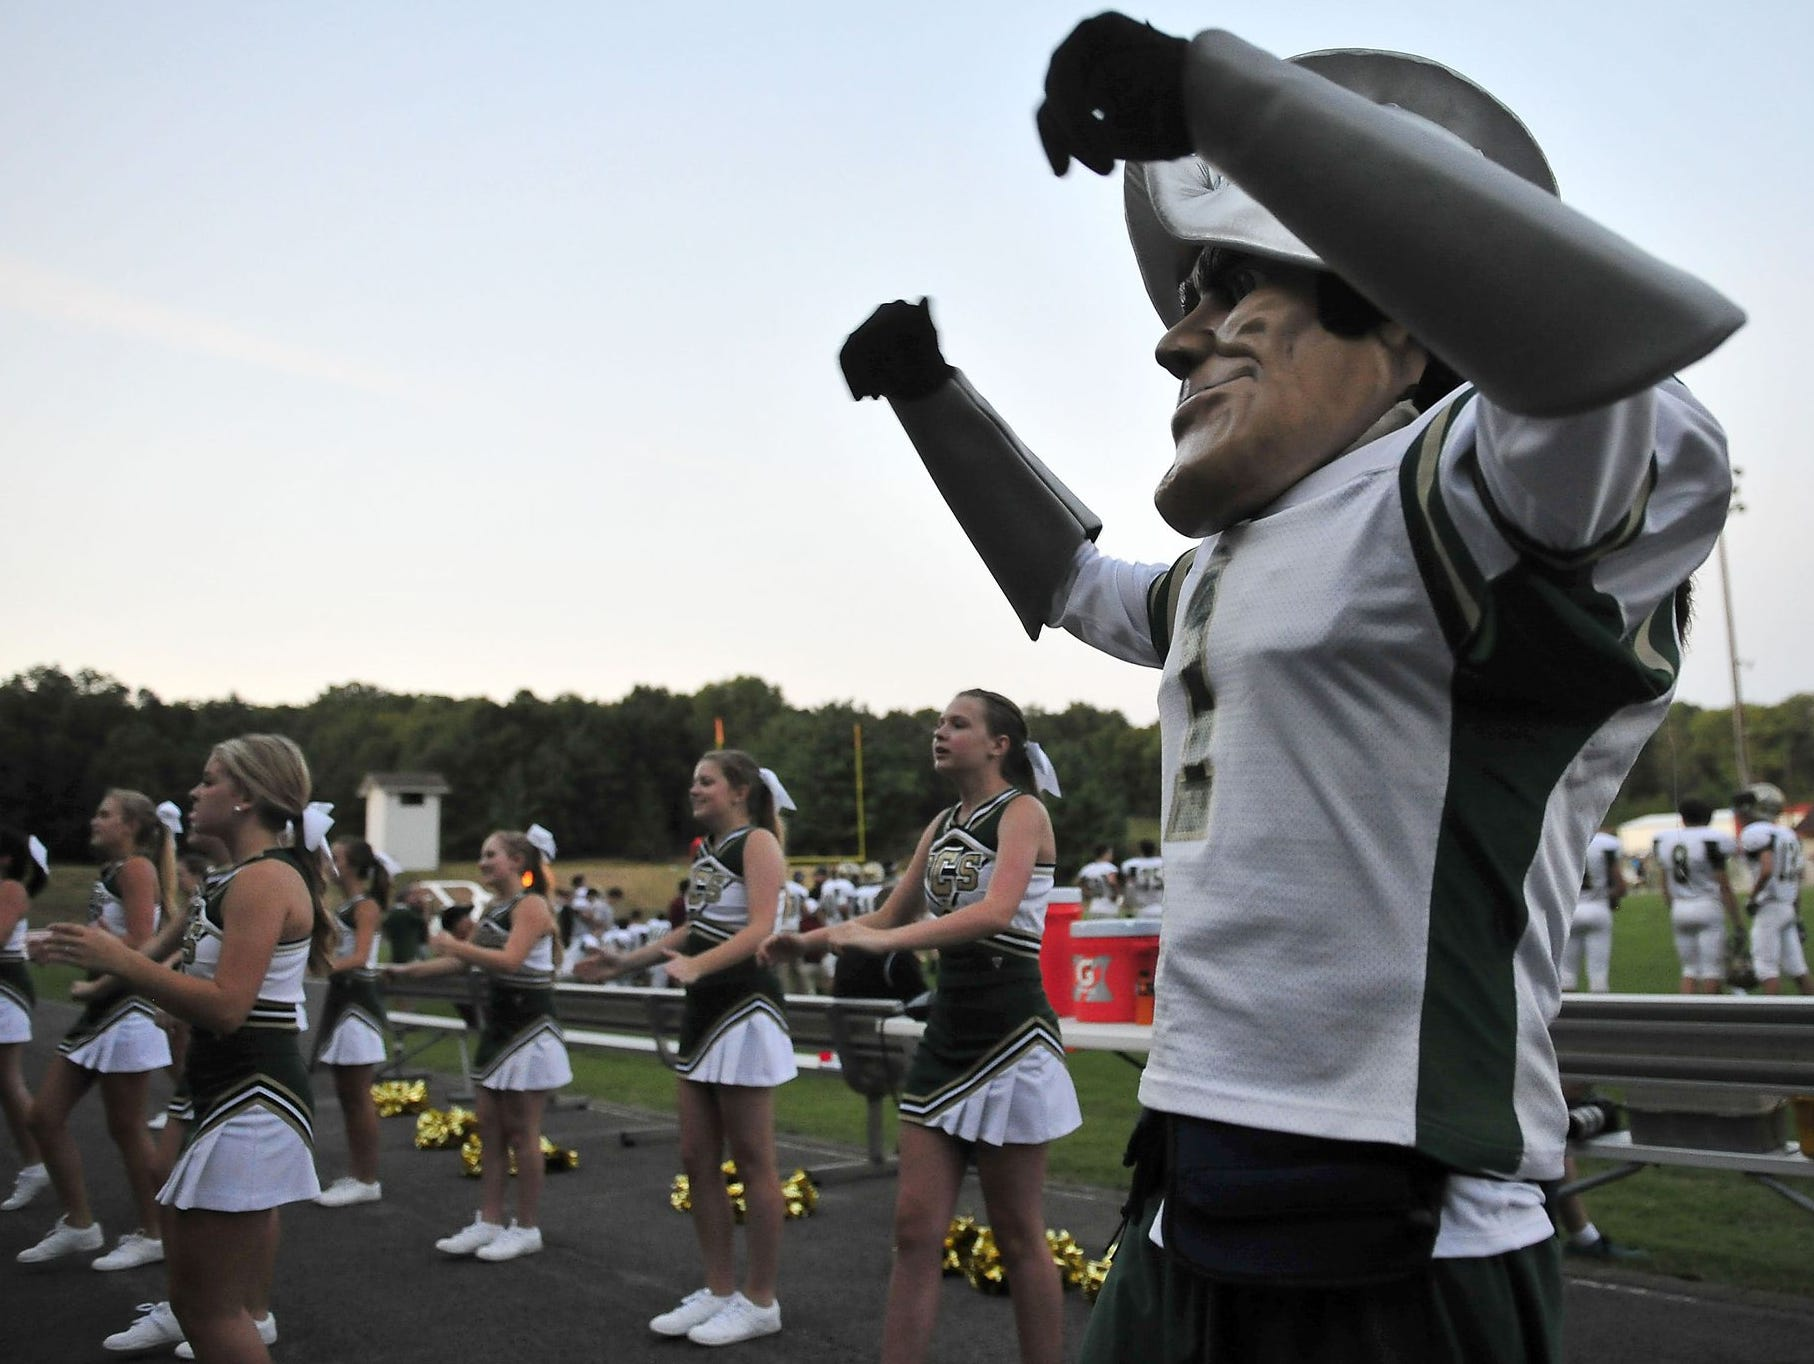 The Friendship Christian mascot and cheerleaders cheer on the Commanders.